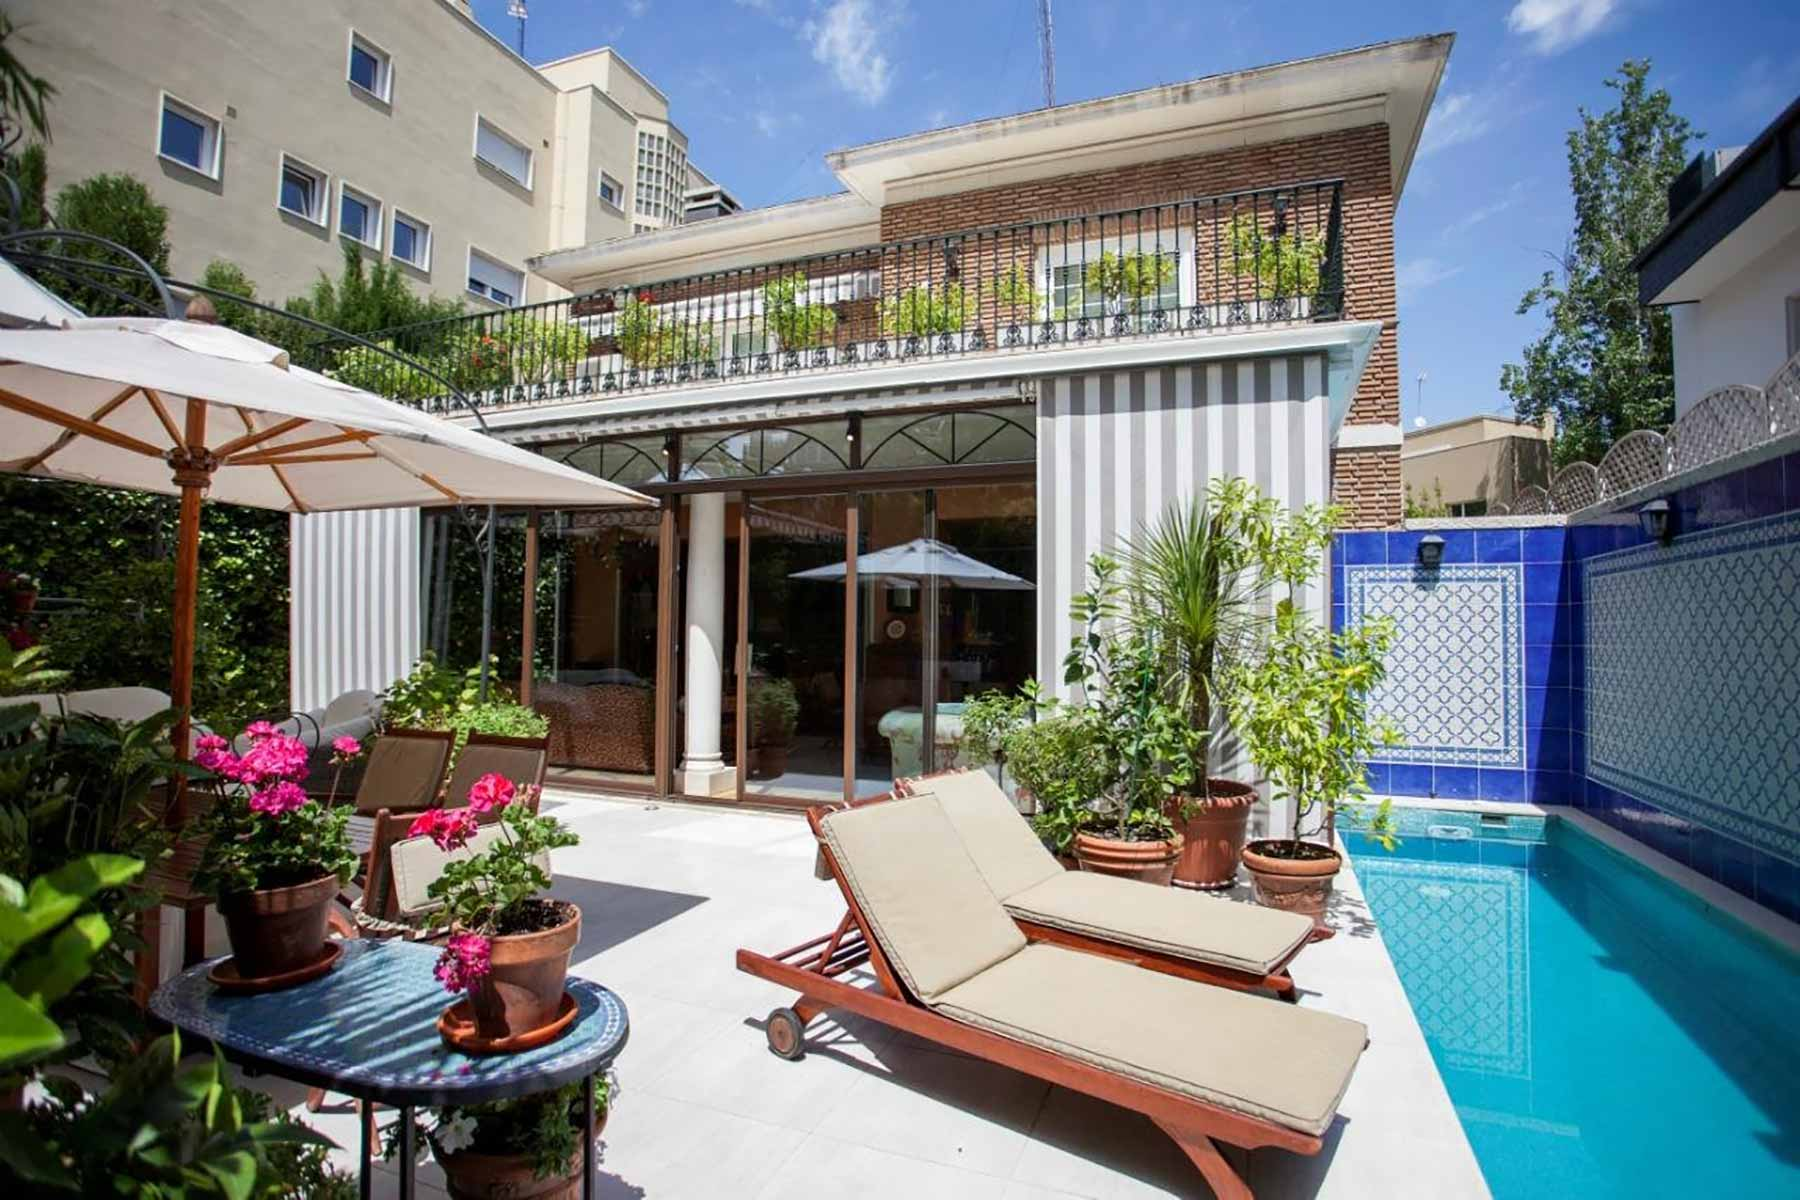 Madrid - Spain - House, 5 rooms, 5 bedrooms - Slideshow Picture 3